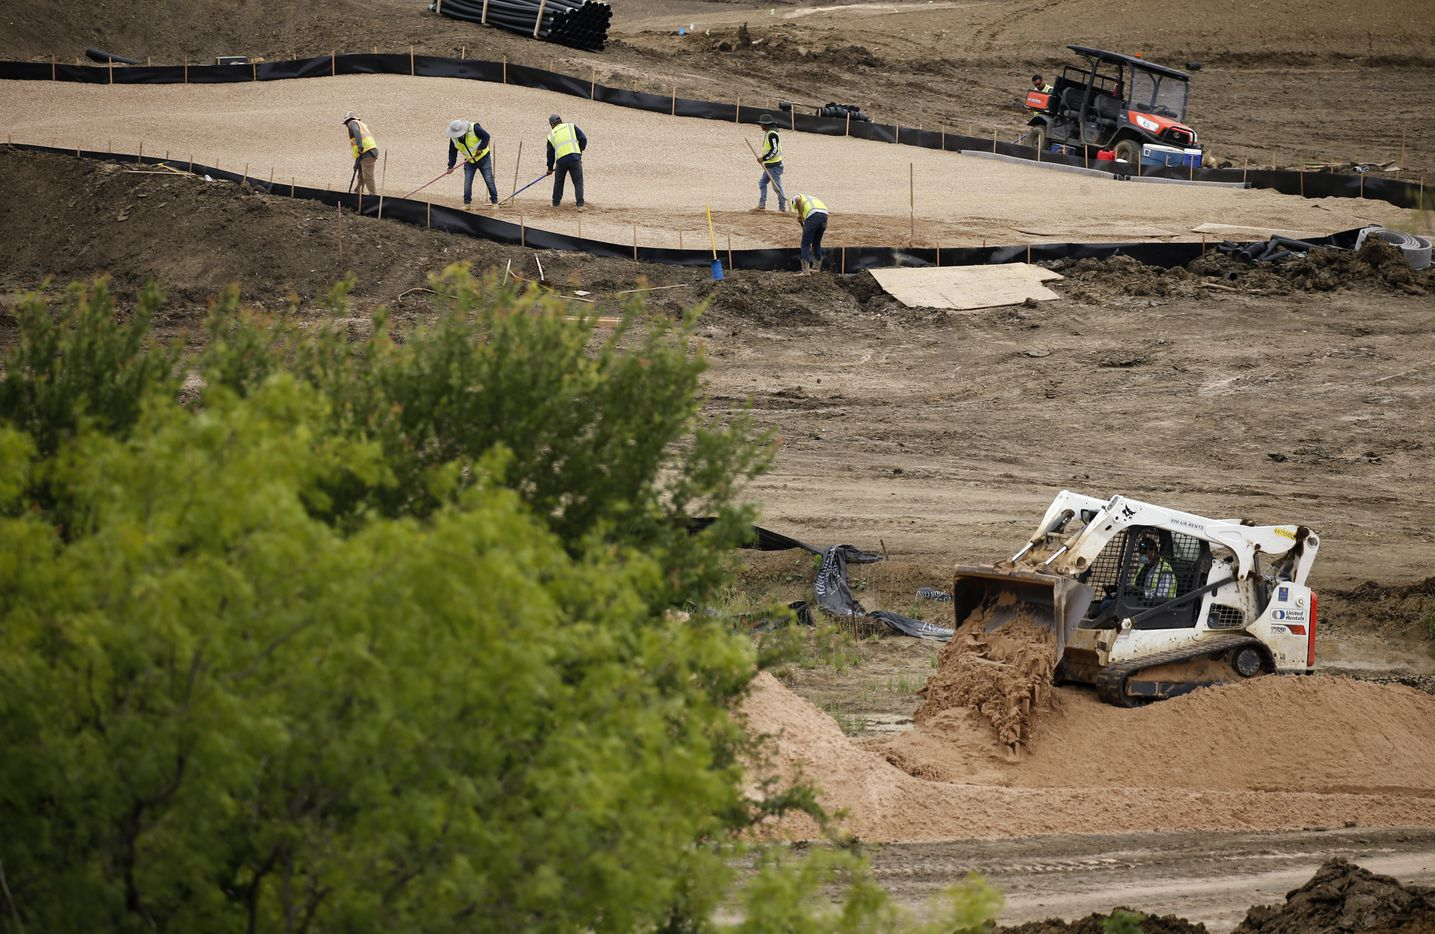 Construction continues on the green of hole 3 on the West Course designed by Beau Welling at PGA Frisco in Frisco, Texas, on Wednesday, May 20, 2020. The $520 million project is a mixed-use development that will be home to the PGA of America headquarters and two championship golf courses.